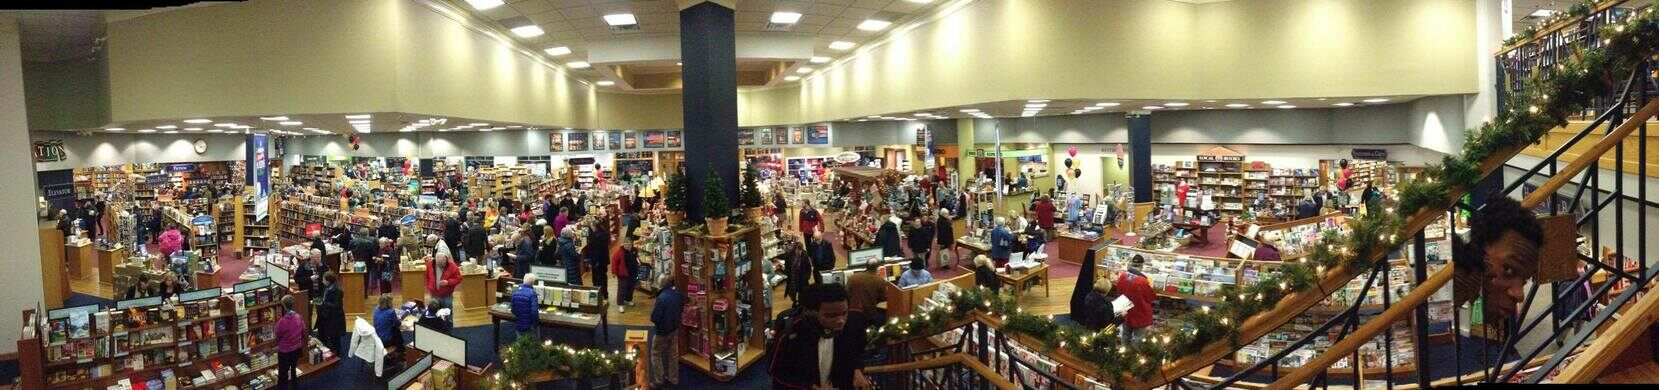 The bookstore full of people!